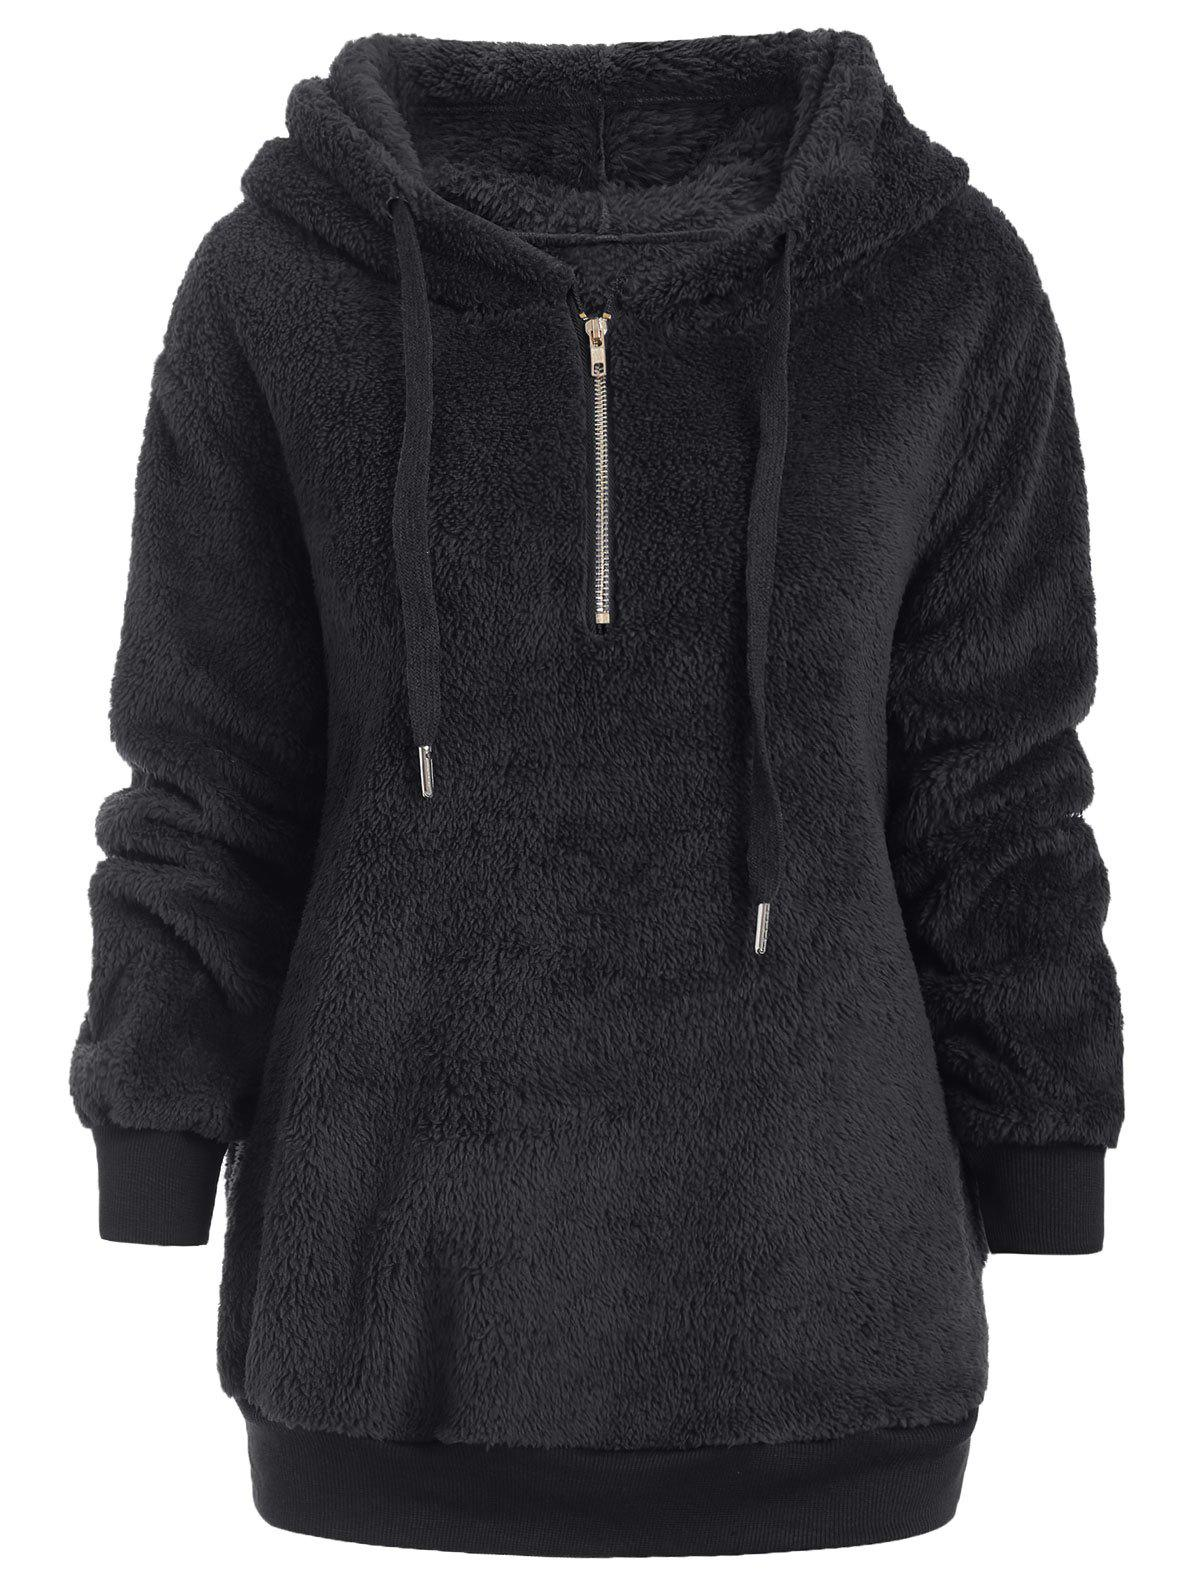 Fancy Half Zipper Drawstring Fluffy Hoodie